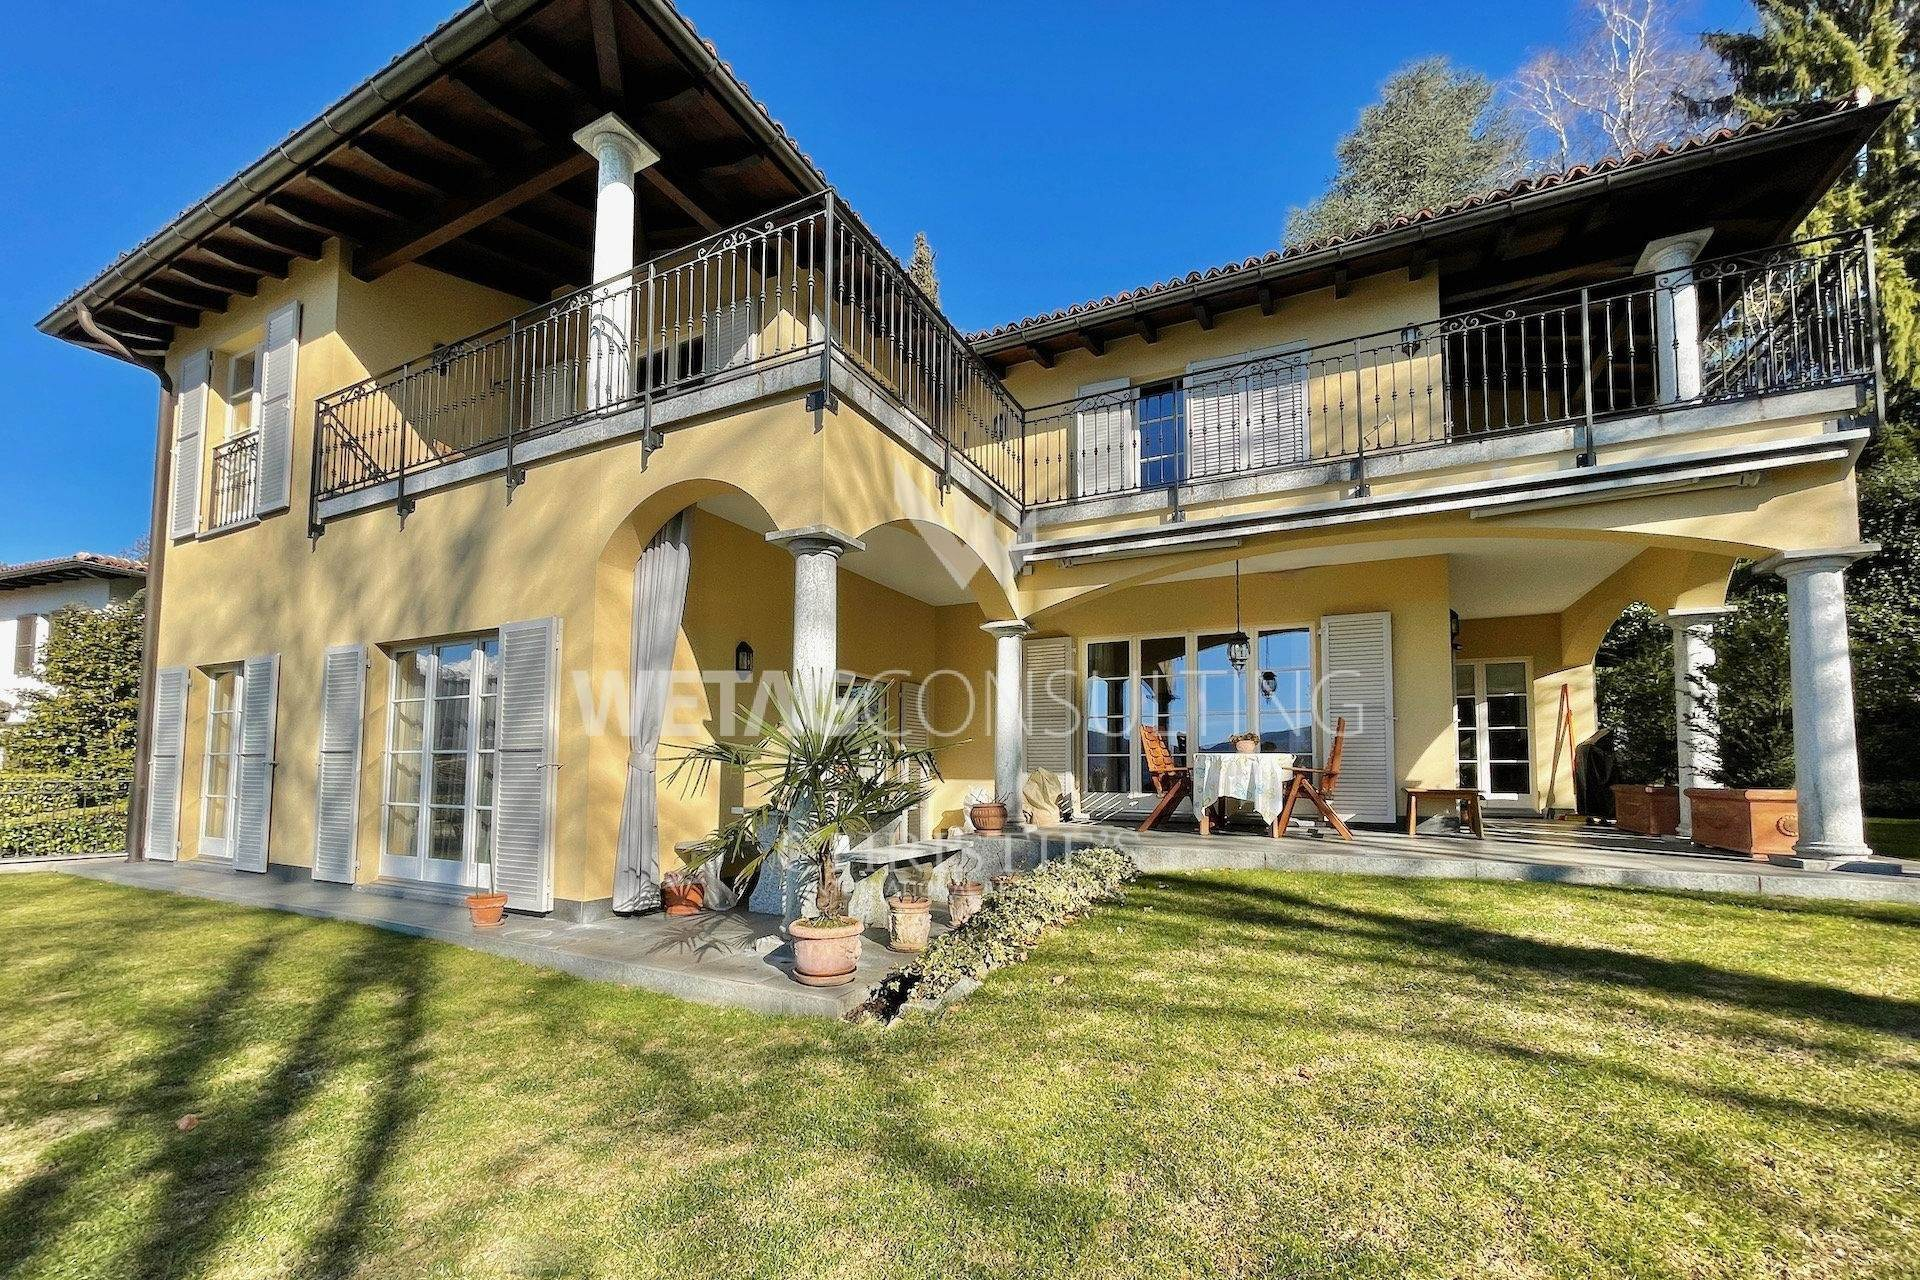 別墅 / 联排别墅 為 出售 在 Elegant Mediterranean villa with garden for sale in Montagnola Montagnola, 提契诺,6926 瑞士